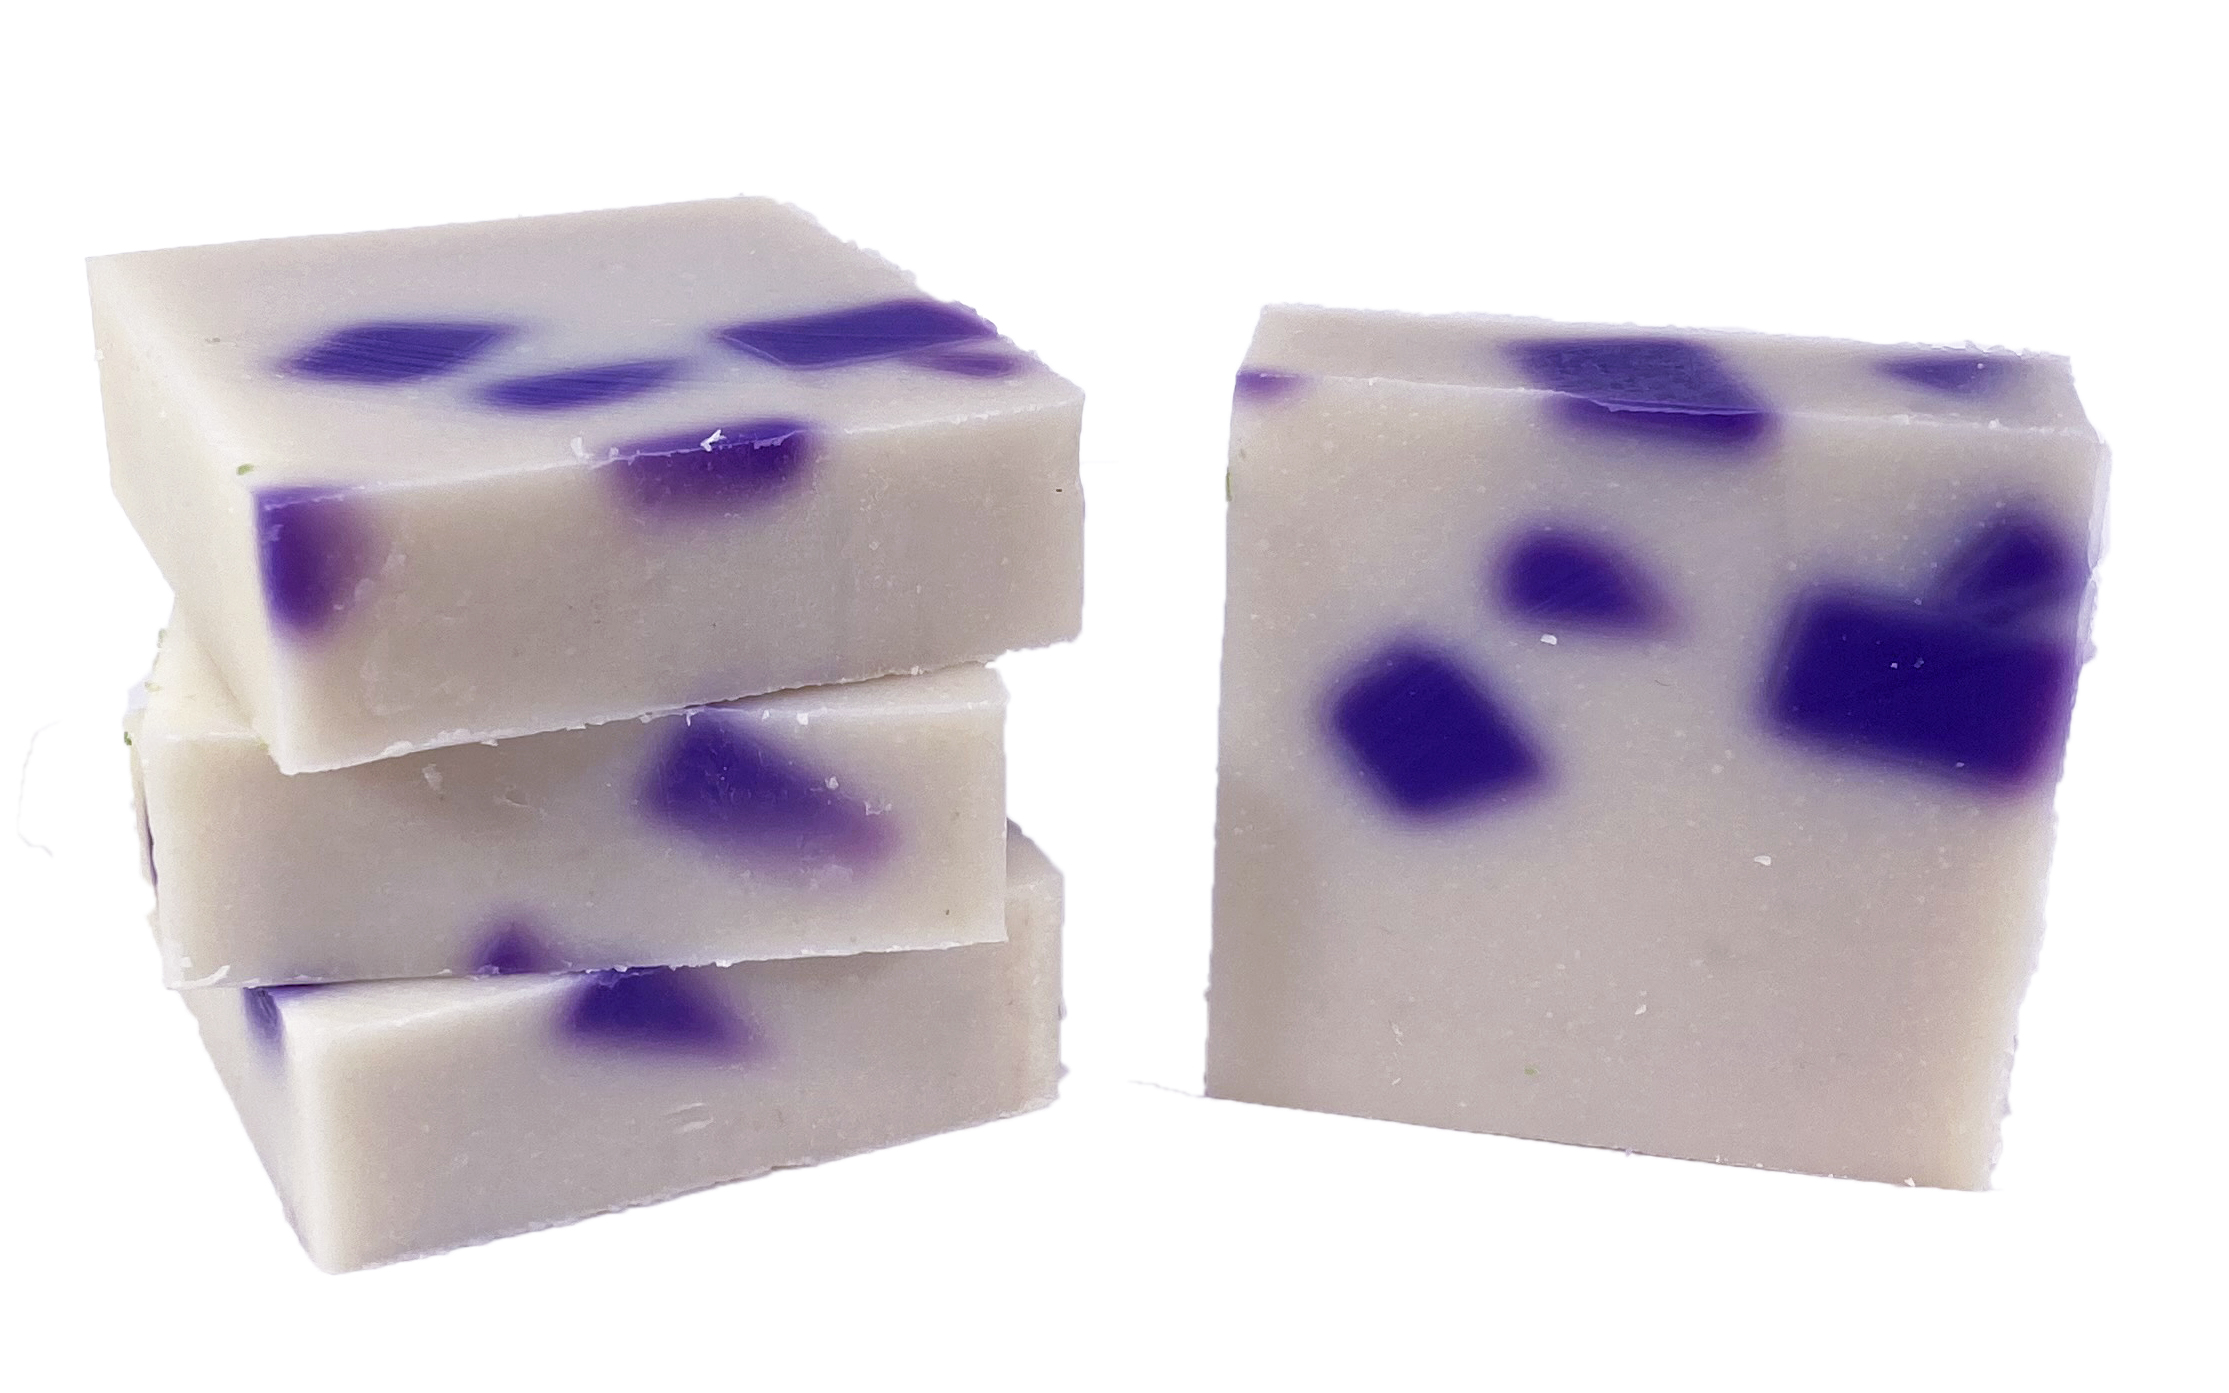 Wholesale Soap Bars - Black Raspberry Vanilla